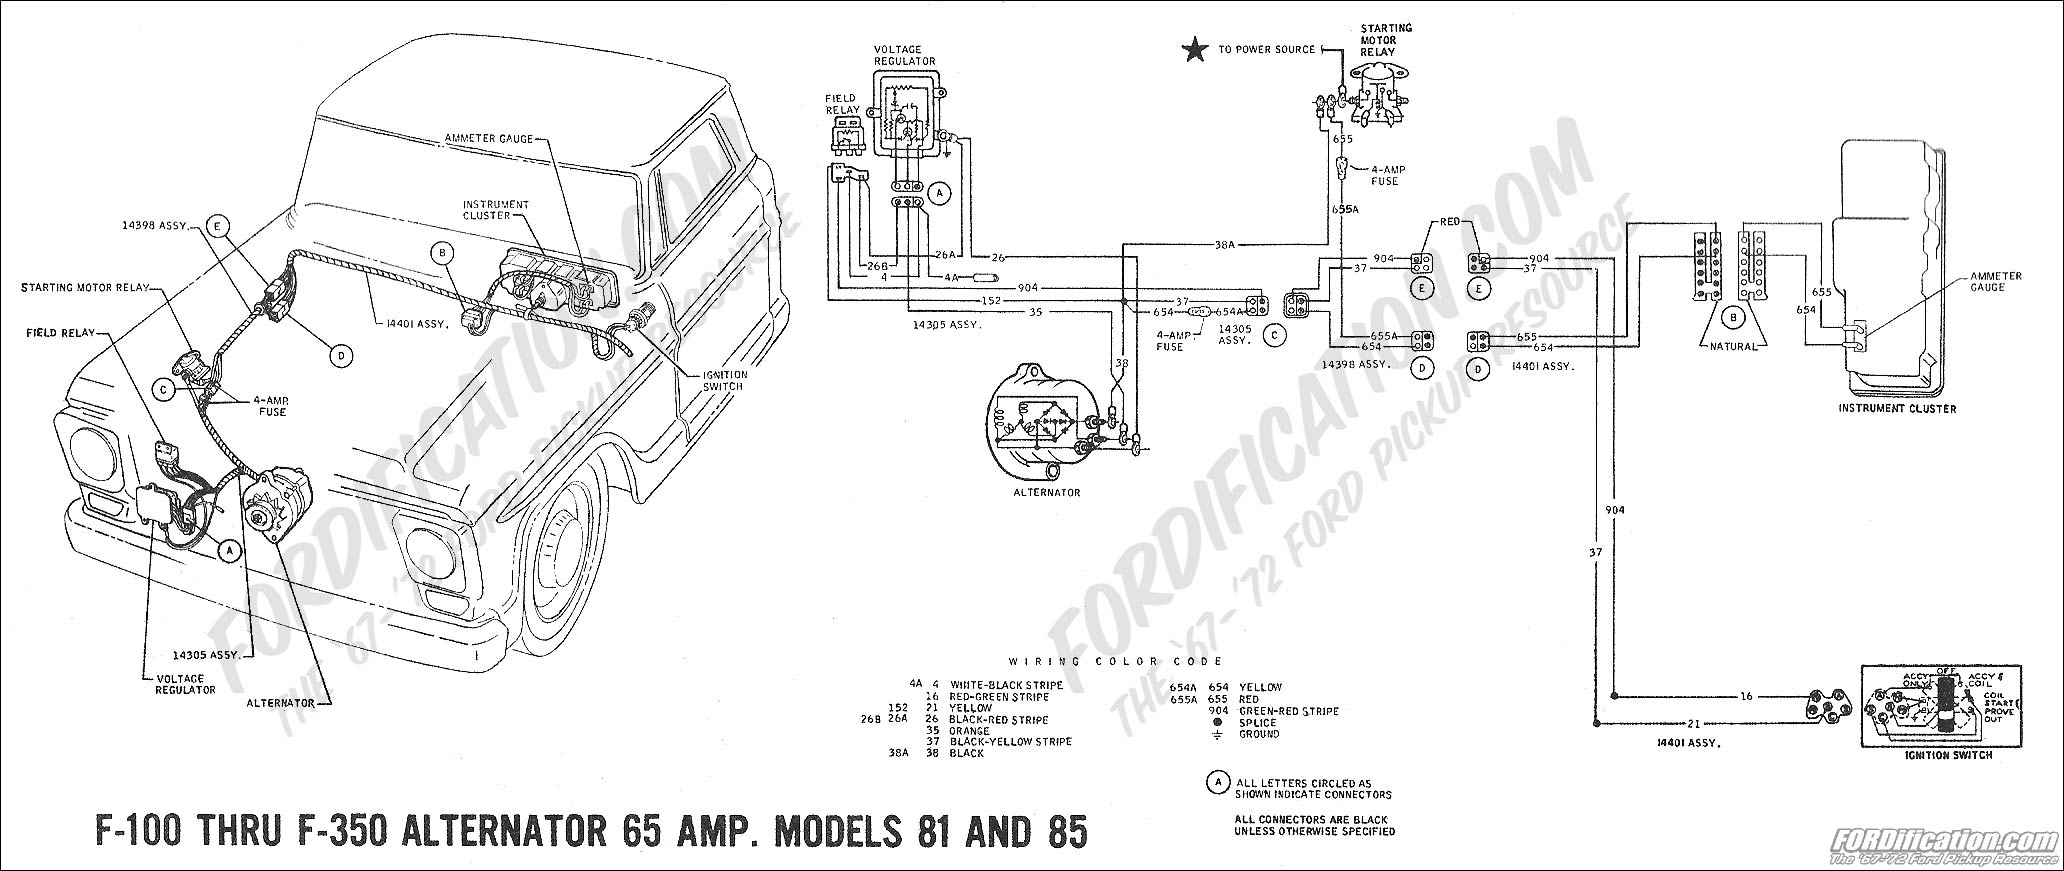 wiring_69charging03 wiring diagram for 1980 ford alternator readingrat net 1980 ford f150 wiring harness at bayanpartner.co